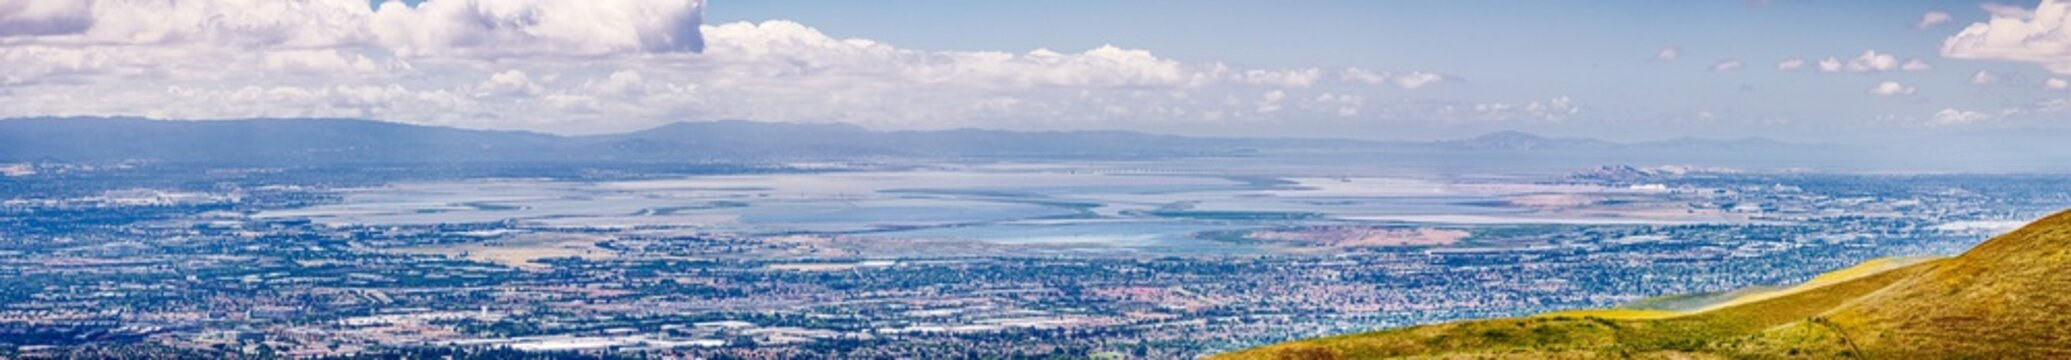 Panoramic view of the cities on the shoreline of south San Francisco bay area; colorful salt ponds in the background; Silicon Valley, California